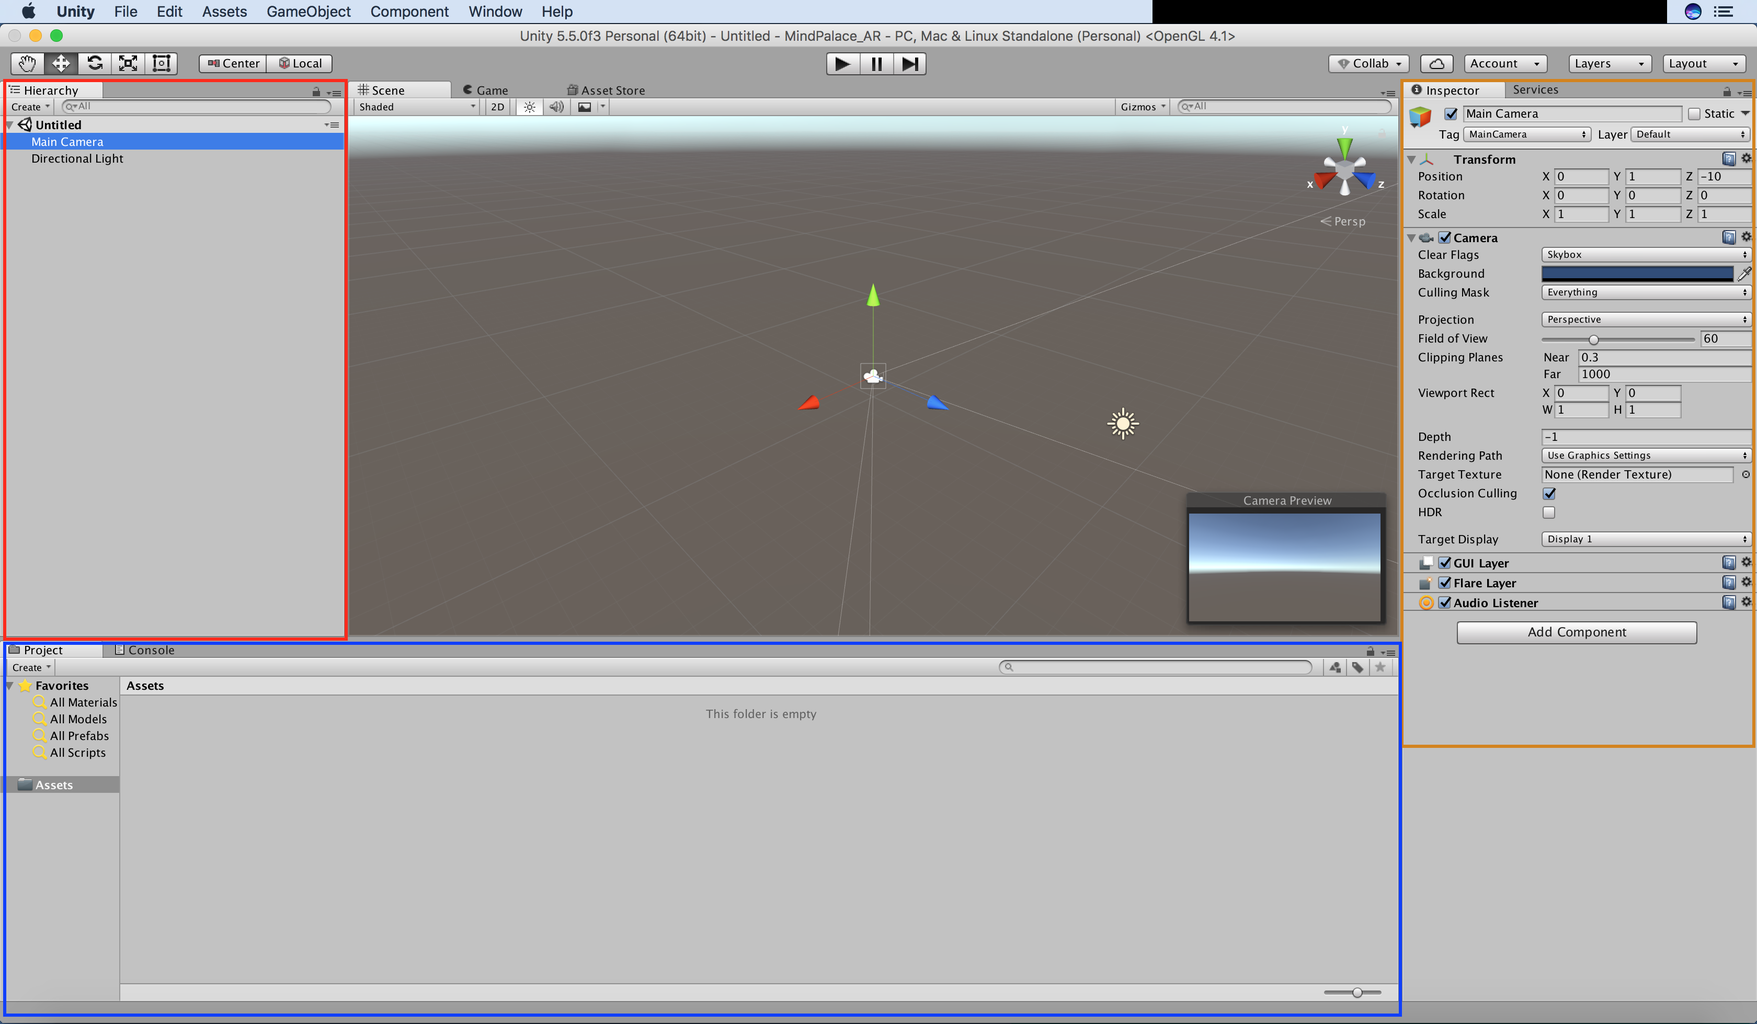 Familiarizing With the Unity Environment